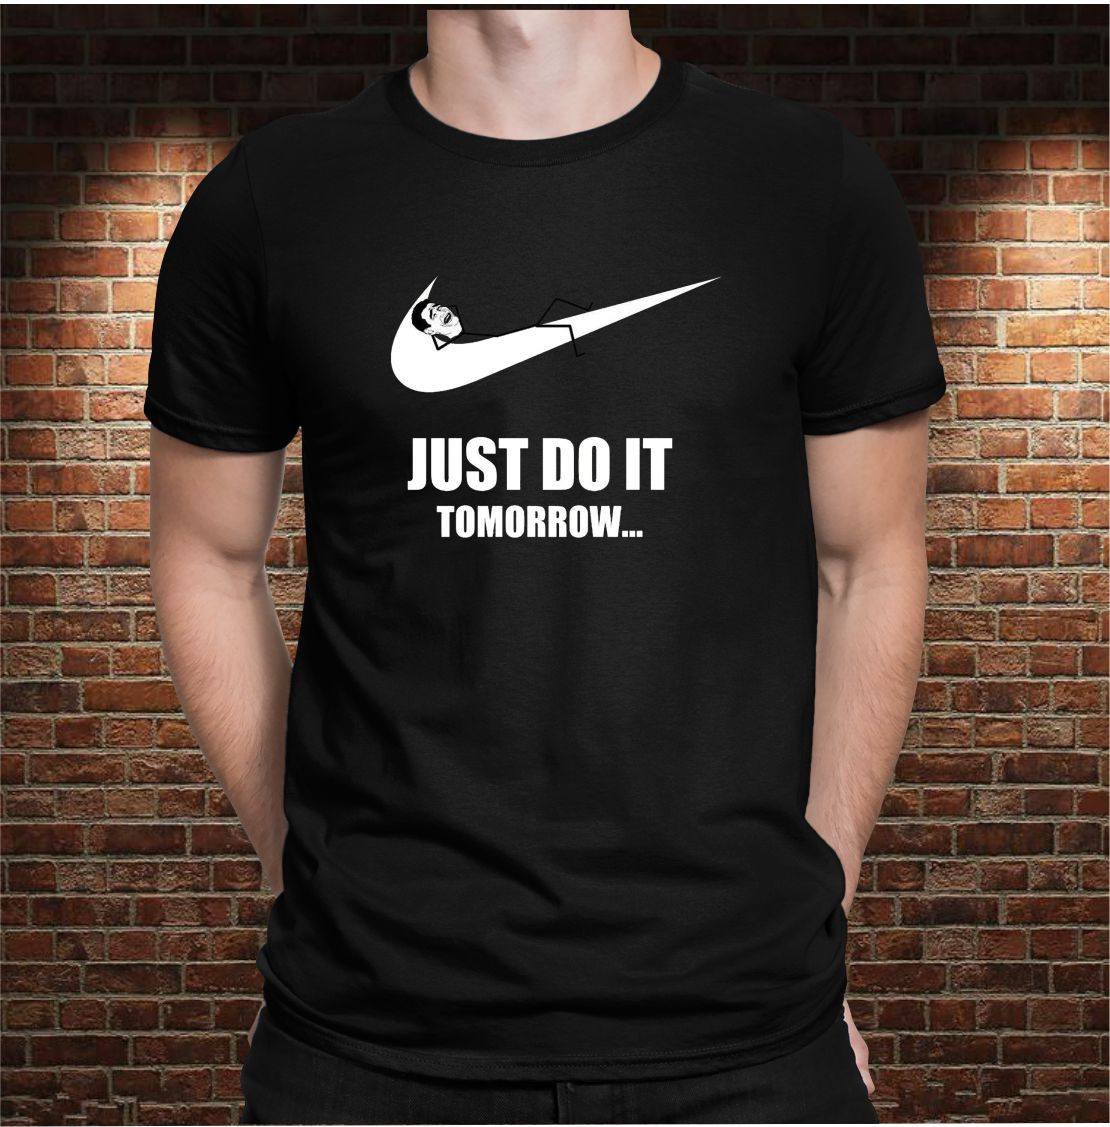 CAMISETA JUST DO IT...TOMORROW